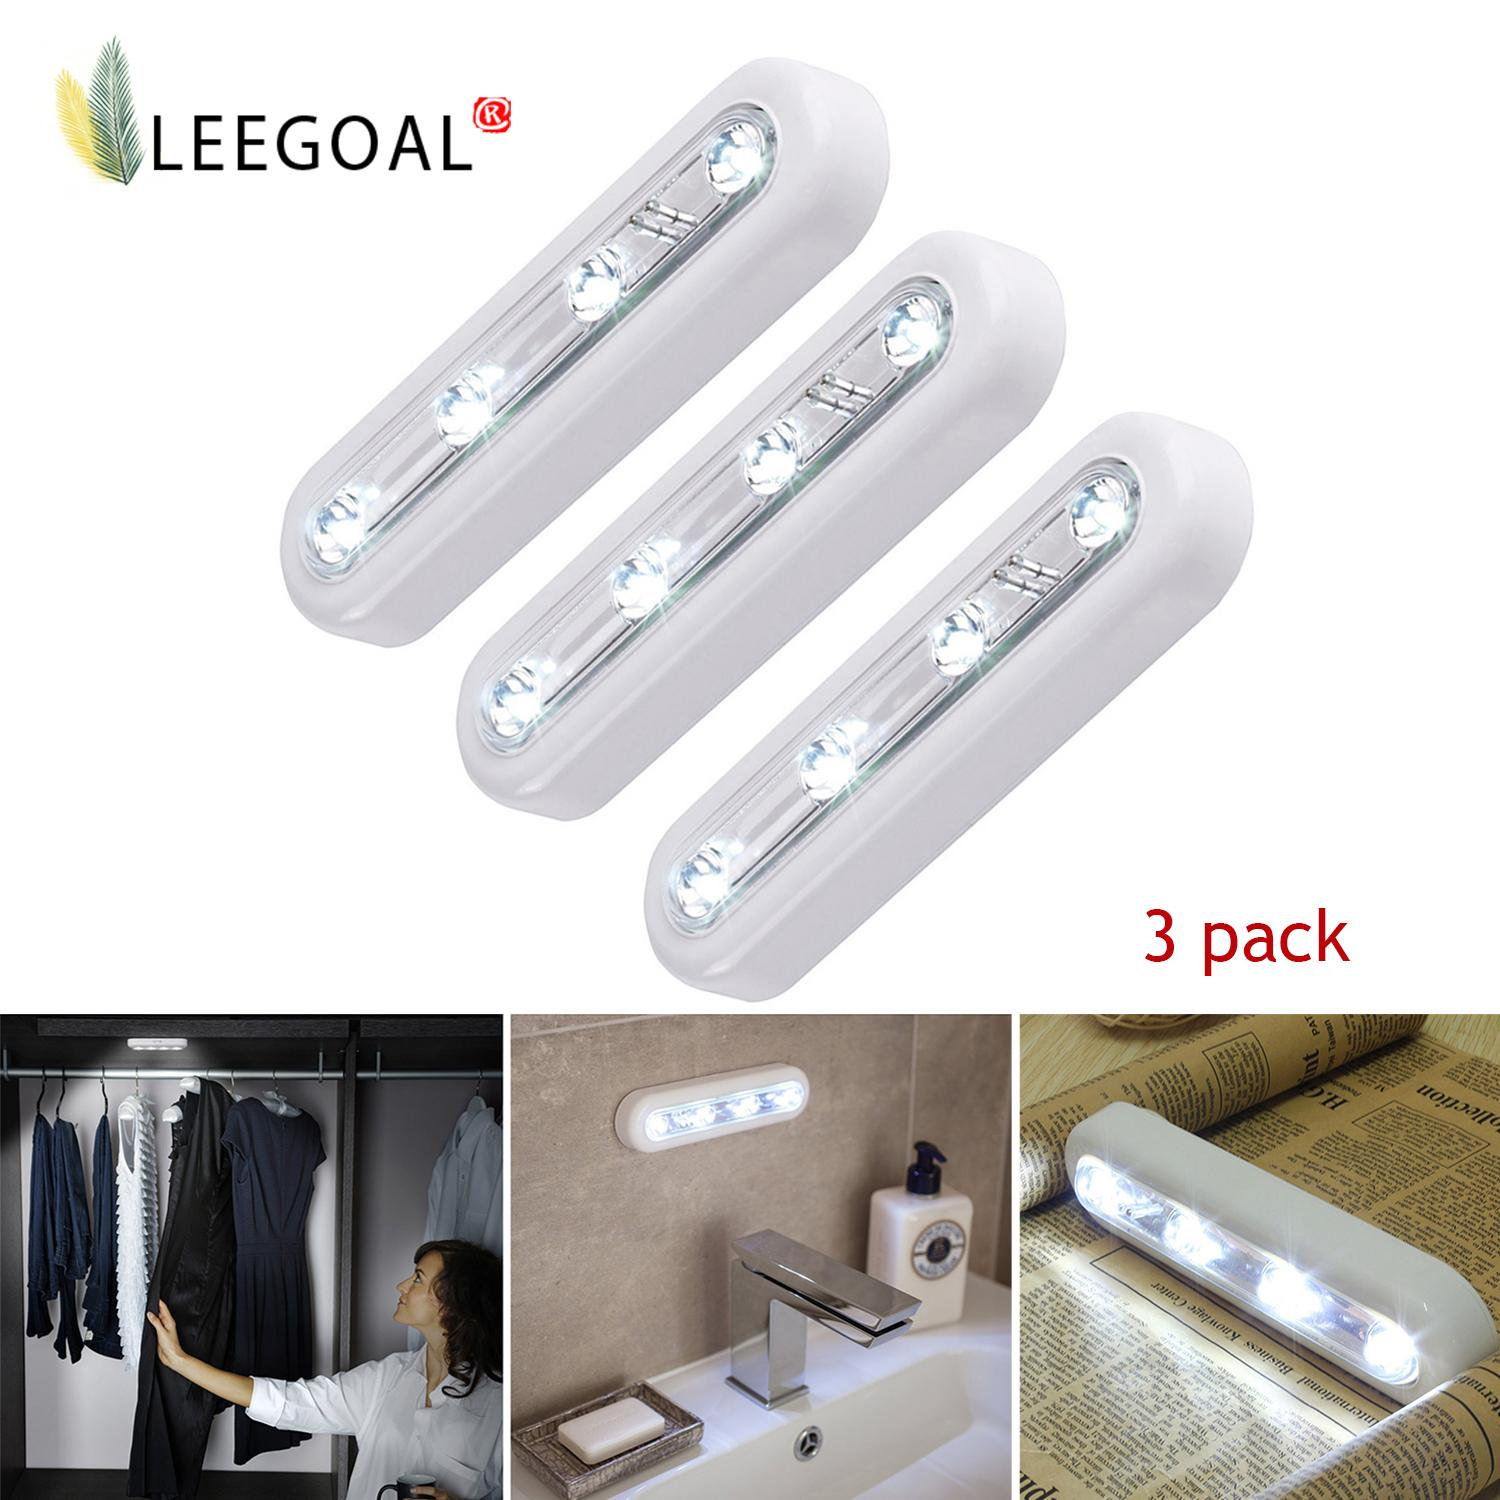 leegoal LED Touch Tap Light Cupboard Lights Stick-on Anywhere Battery Operated Push Light For Closets, Attics, Garages, Car, Sheds, Storage Room 3 Pack - intl